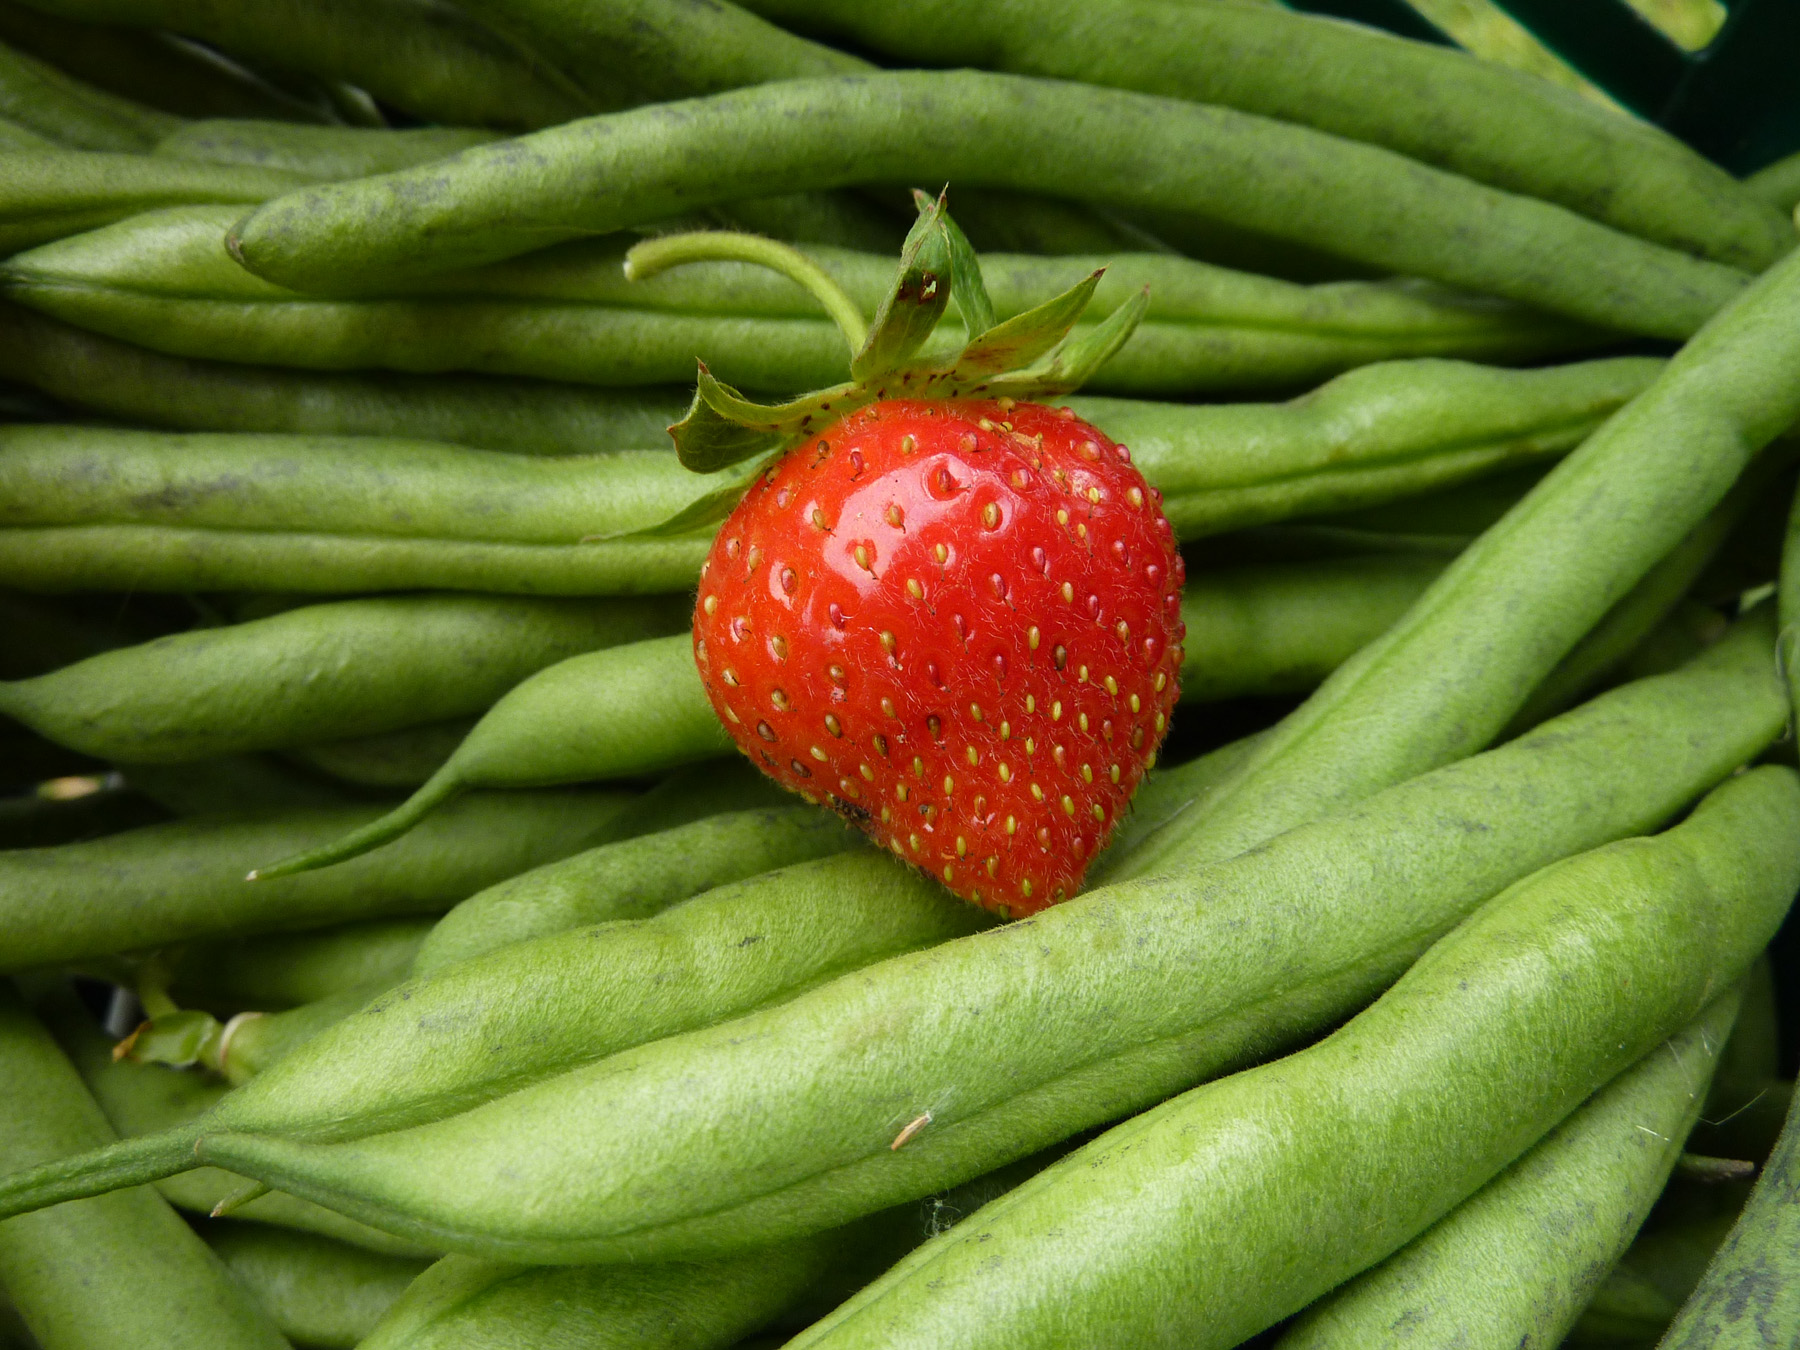 Strawberry and dwarf beans picked